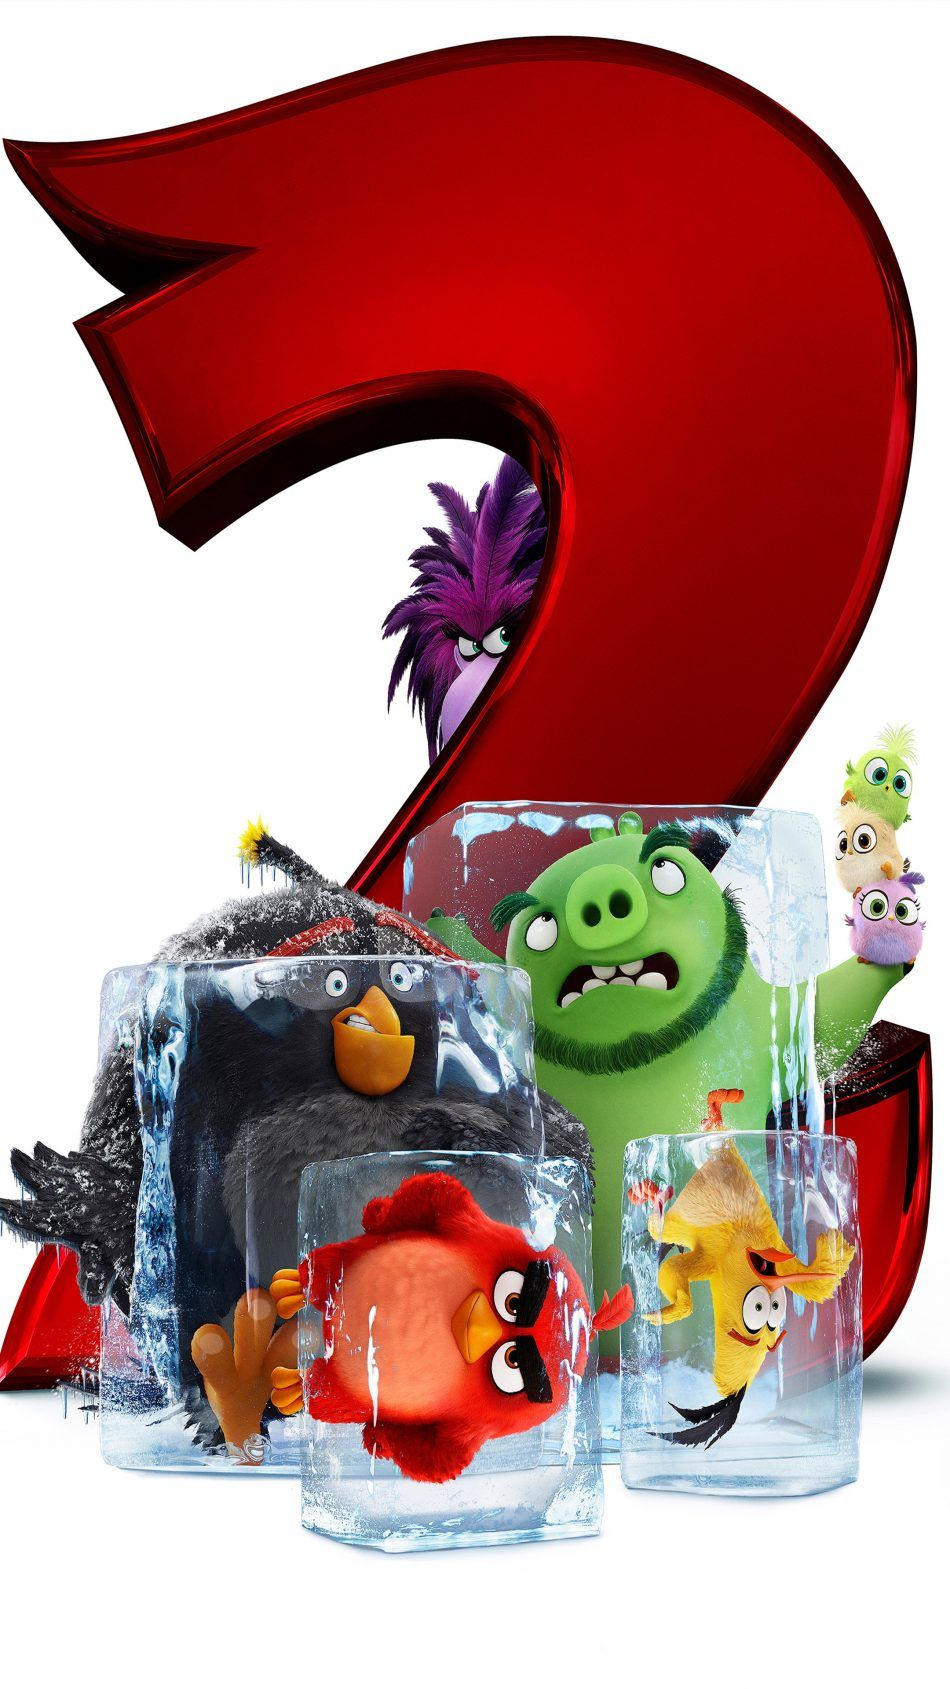 Download The Angry Birds Movie 2 Animation 2019 Free Pure 4k